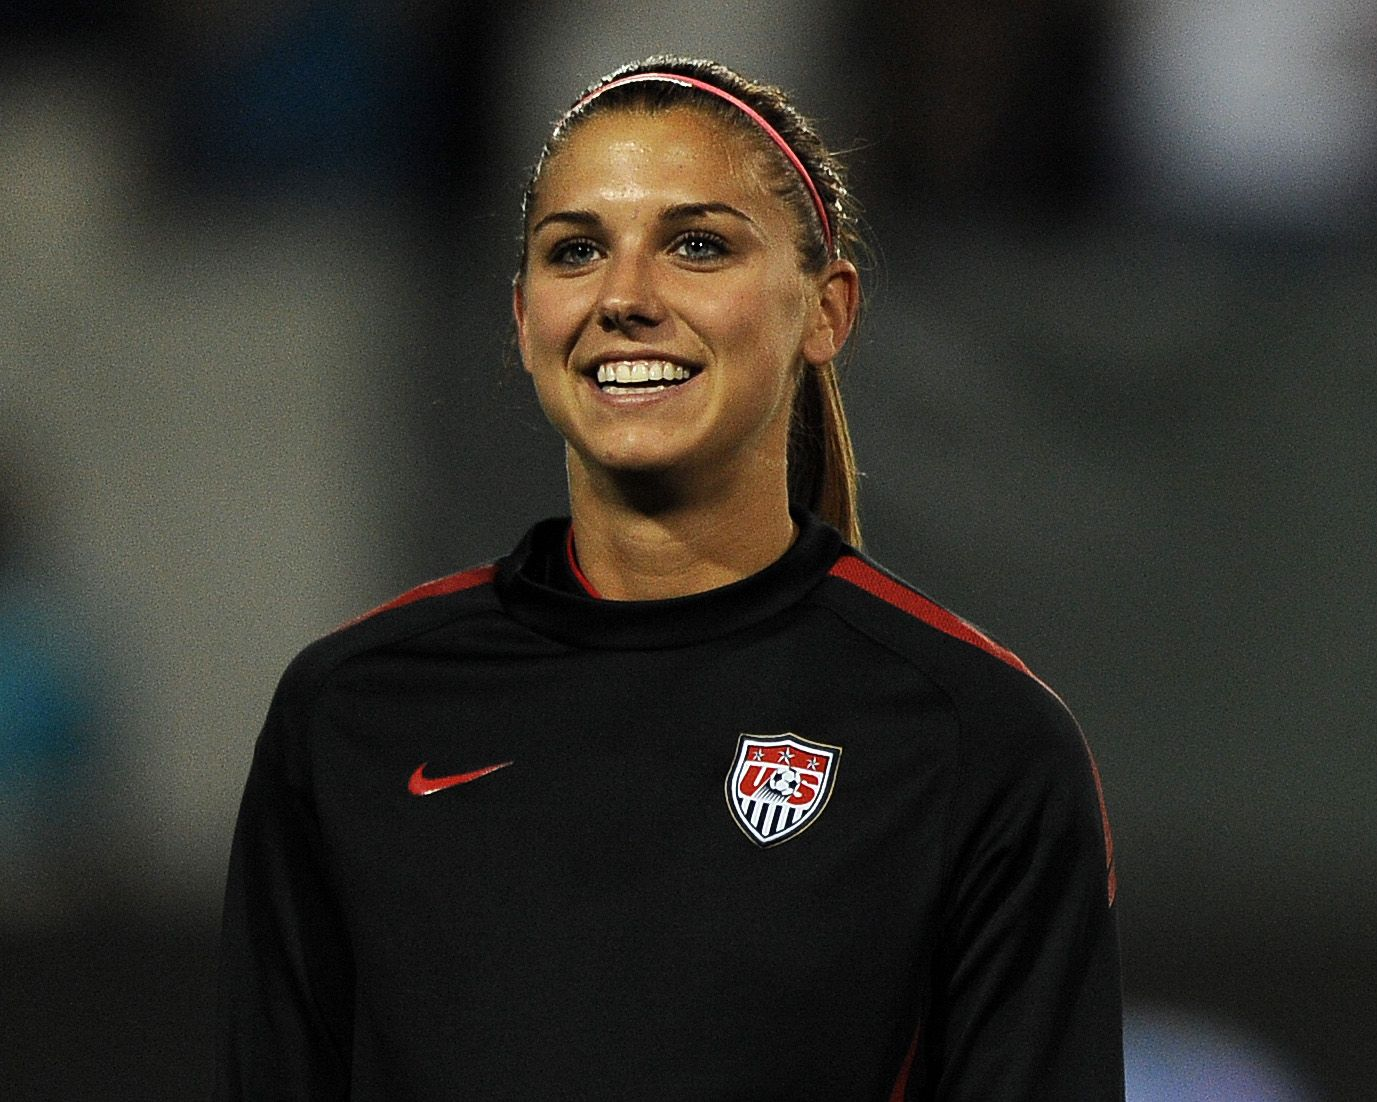 124 best alex morgan images on pinterest football, alex morgan Alyssa Naeher Soccer Mia Hamm Coloring Pages College Coloring Pages